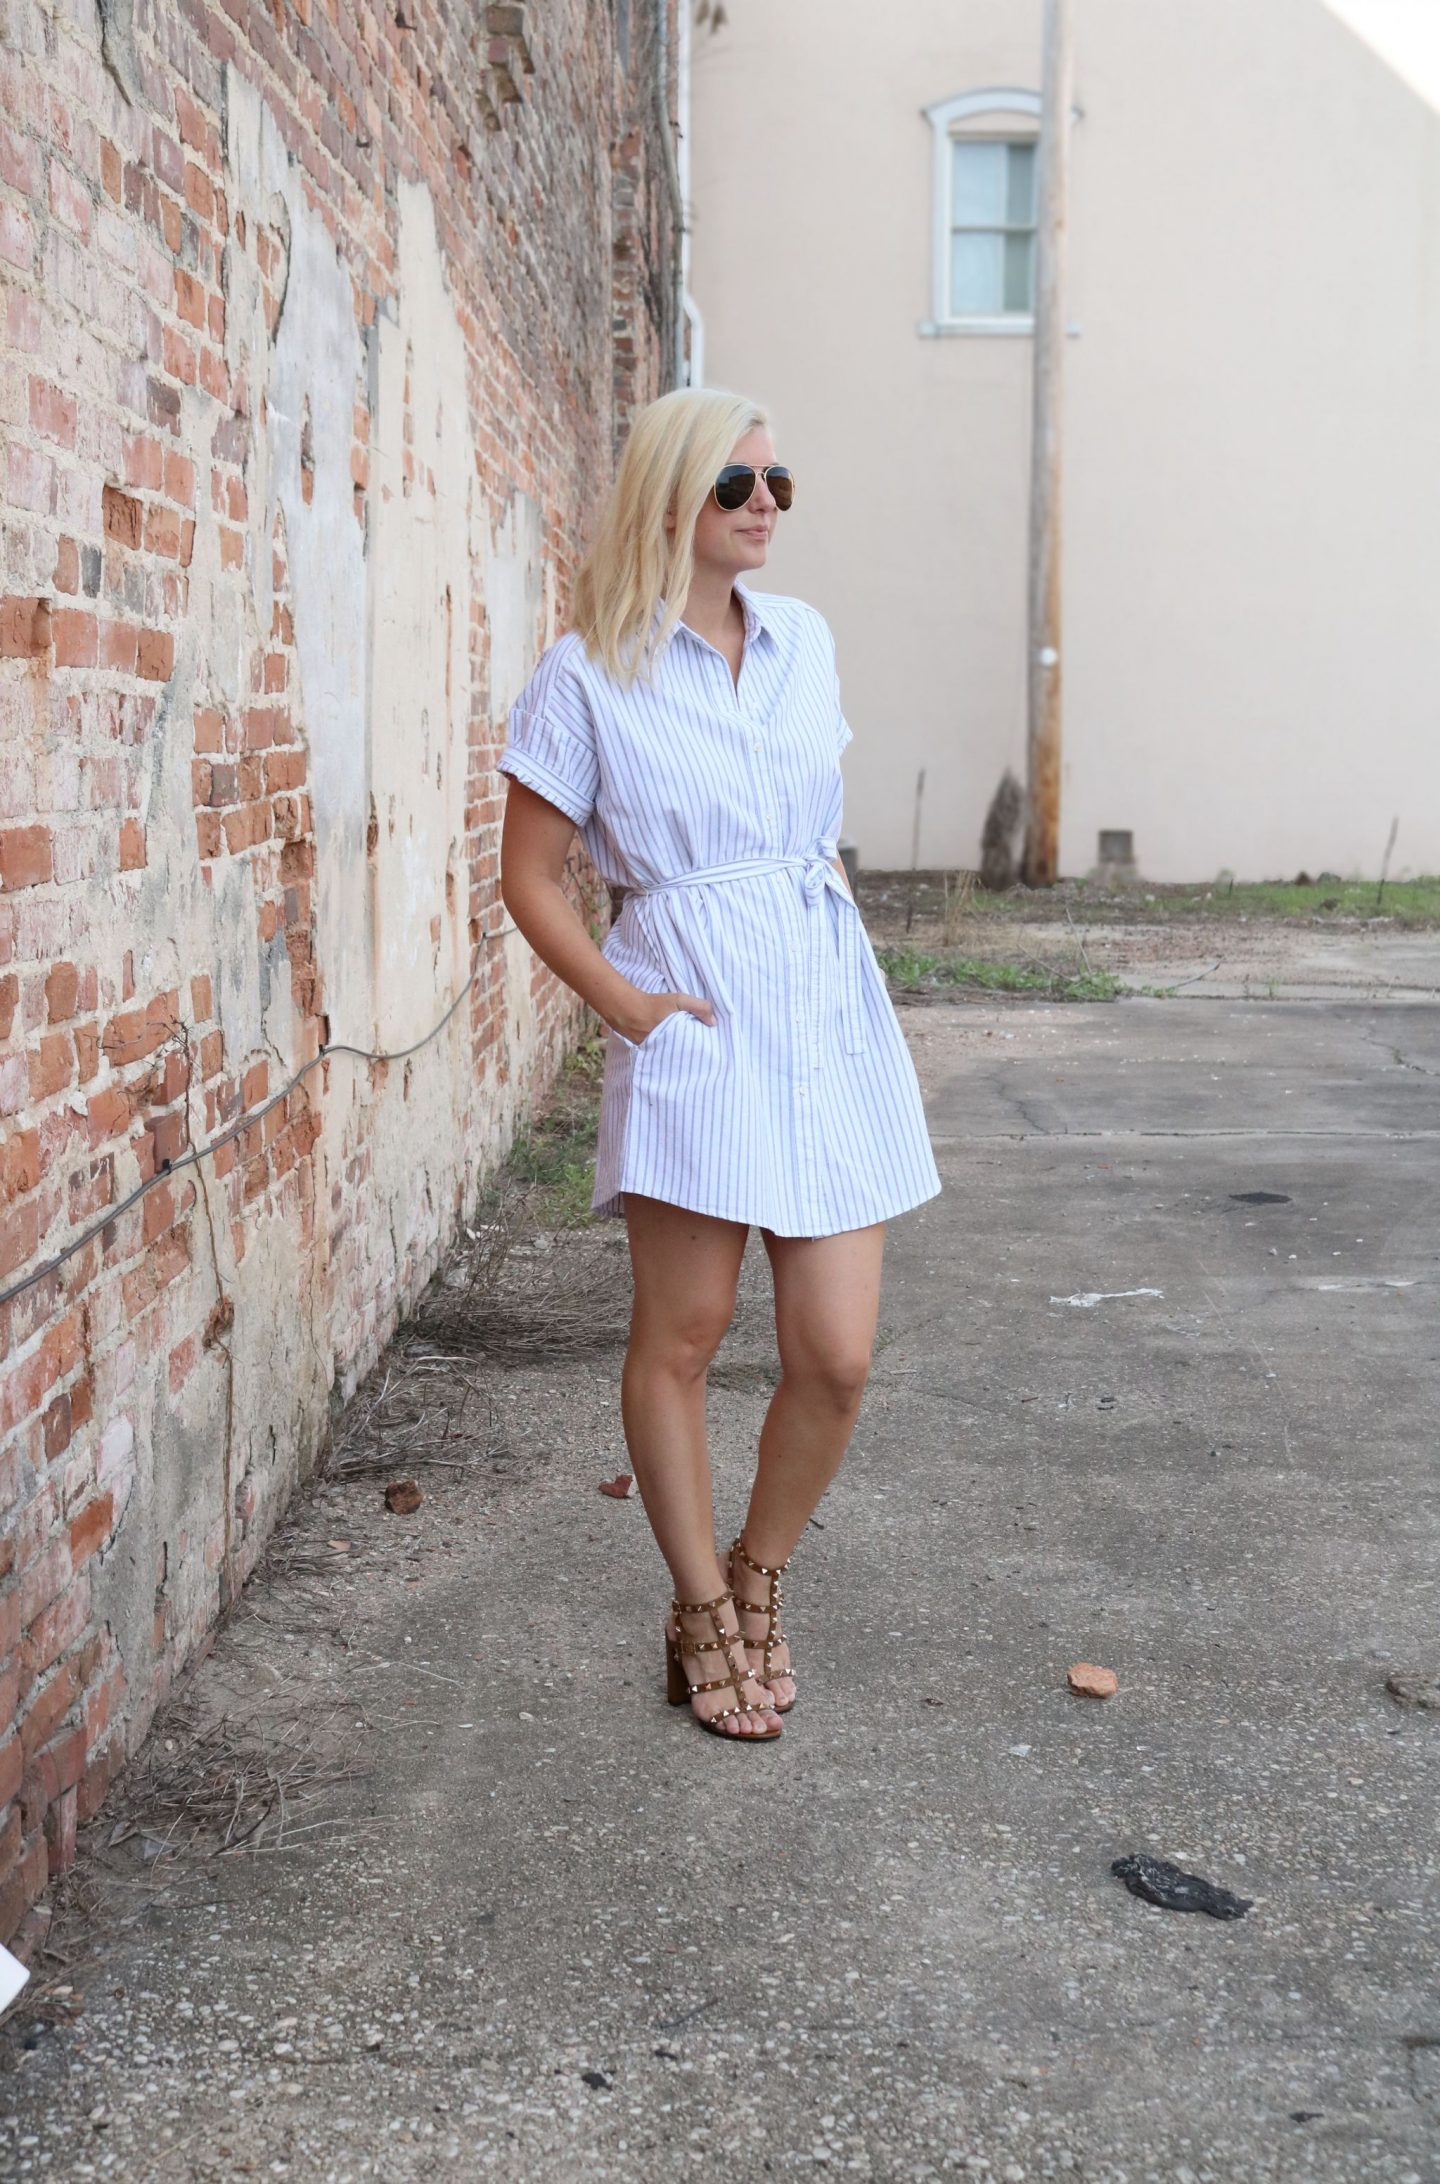 styling a shirtdress, how to wear rockstud heels